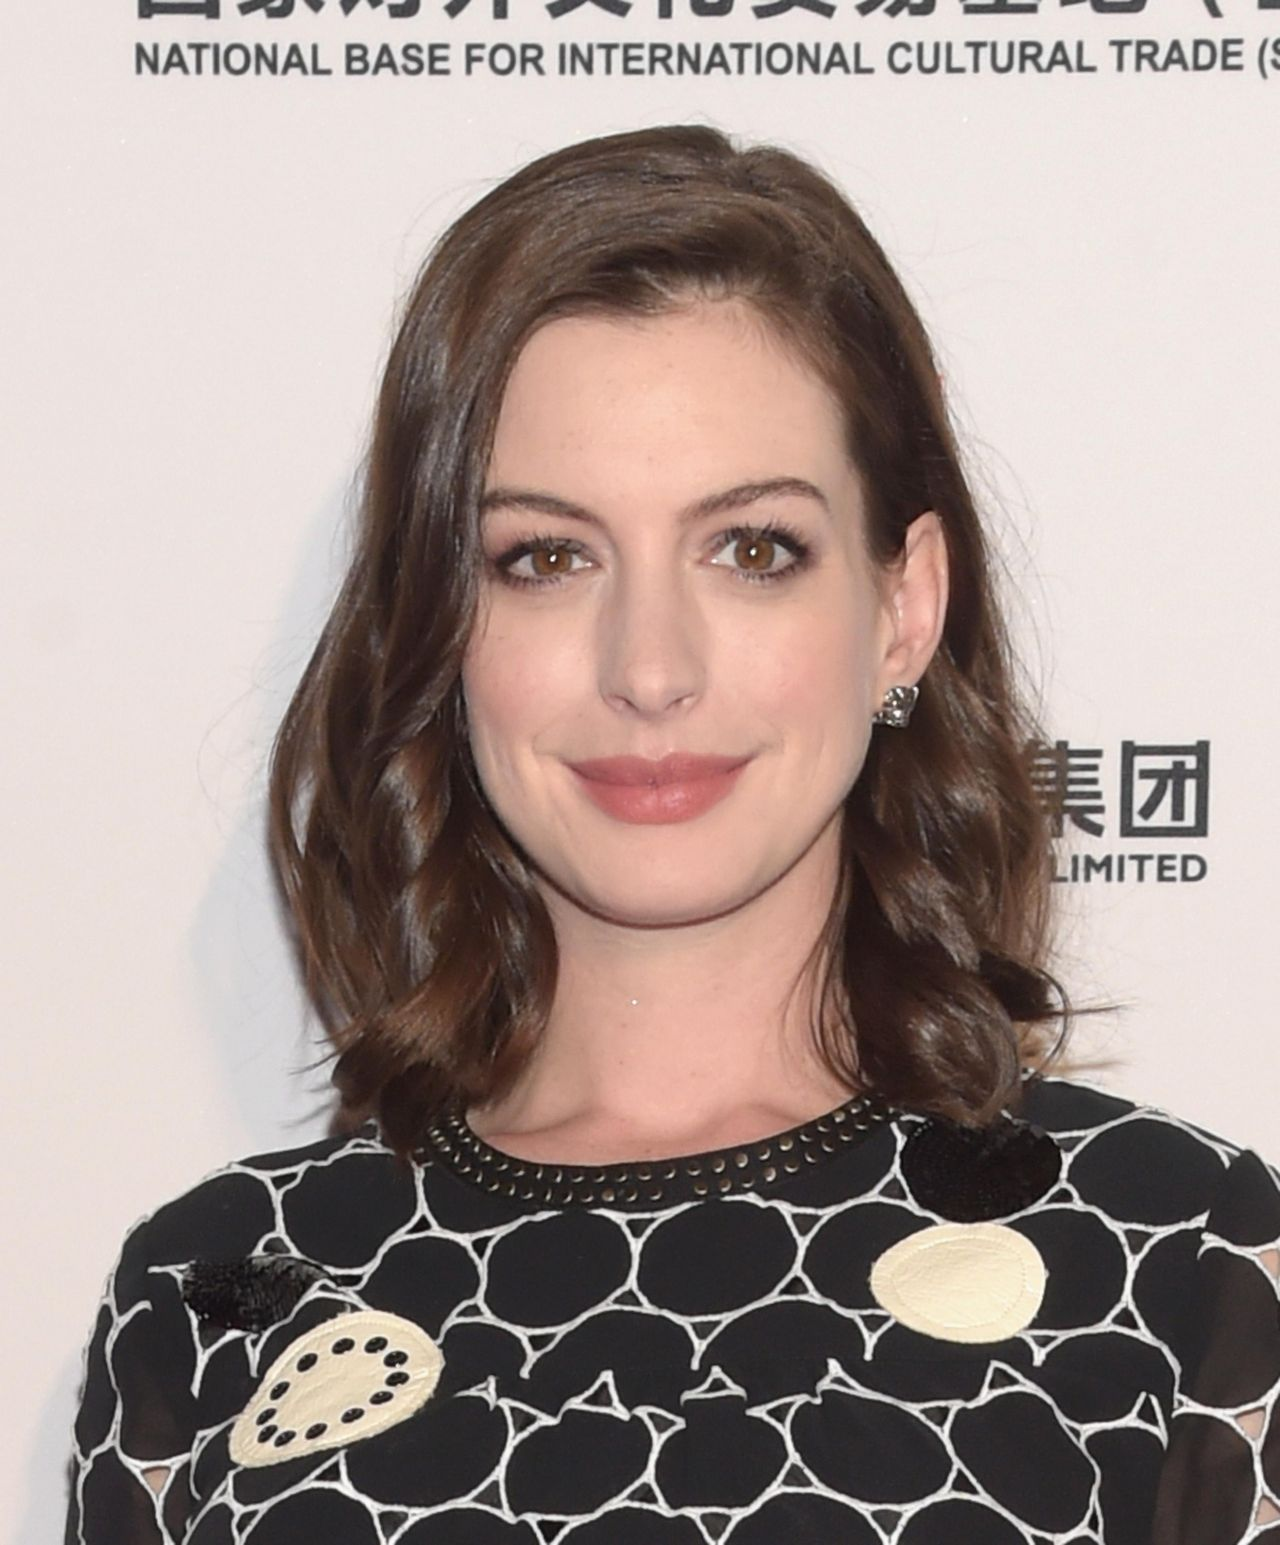 Anne Hathaway Drawing: LA Art Show And Los Angeles Fine Art Show